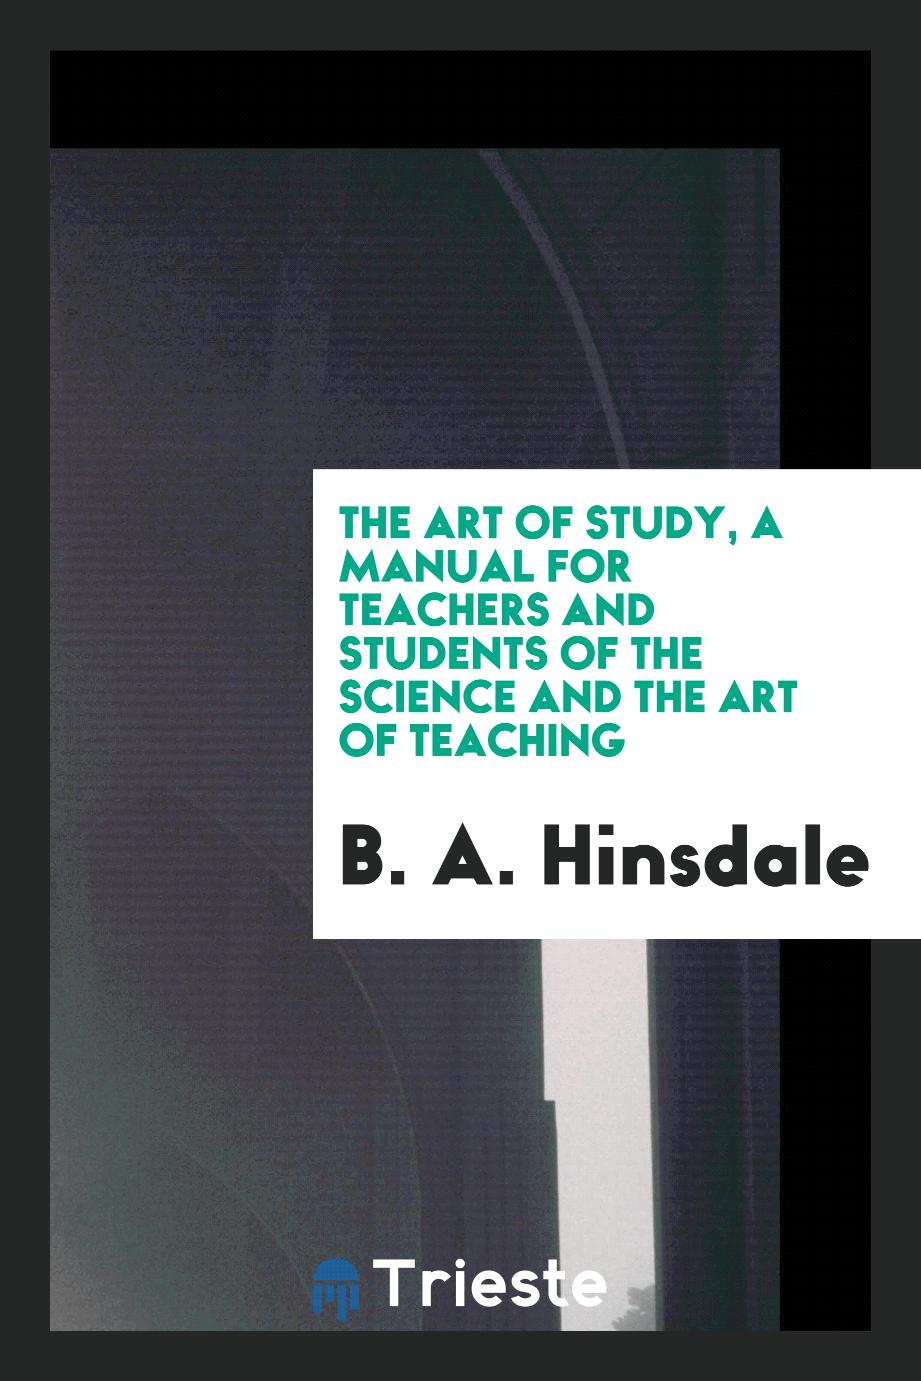 The art of study, a manual for teachers and students of the science and the art of teaching